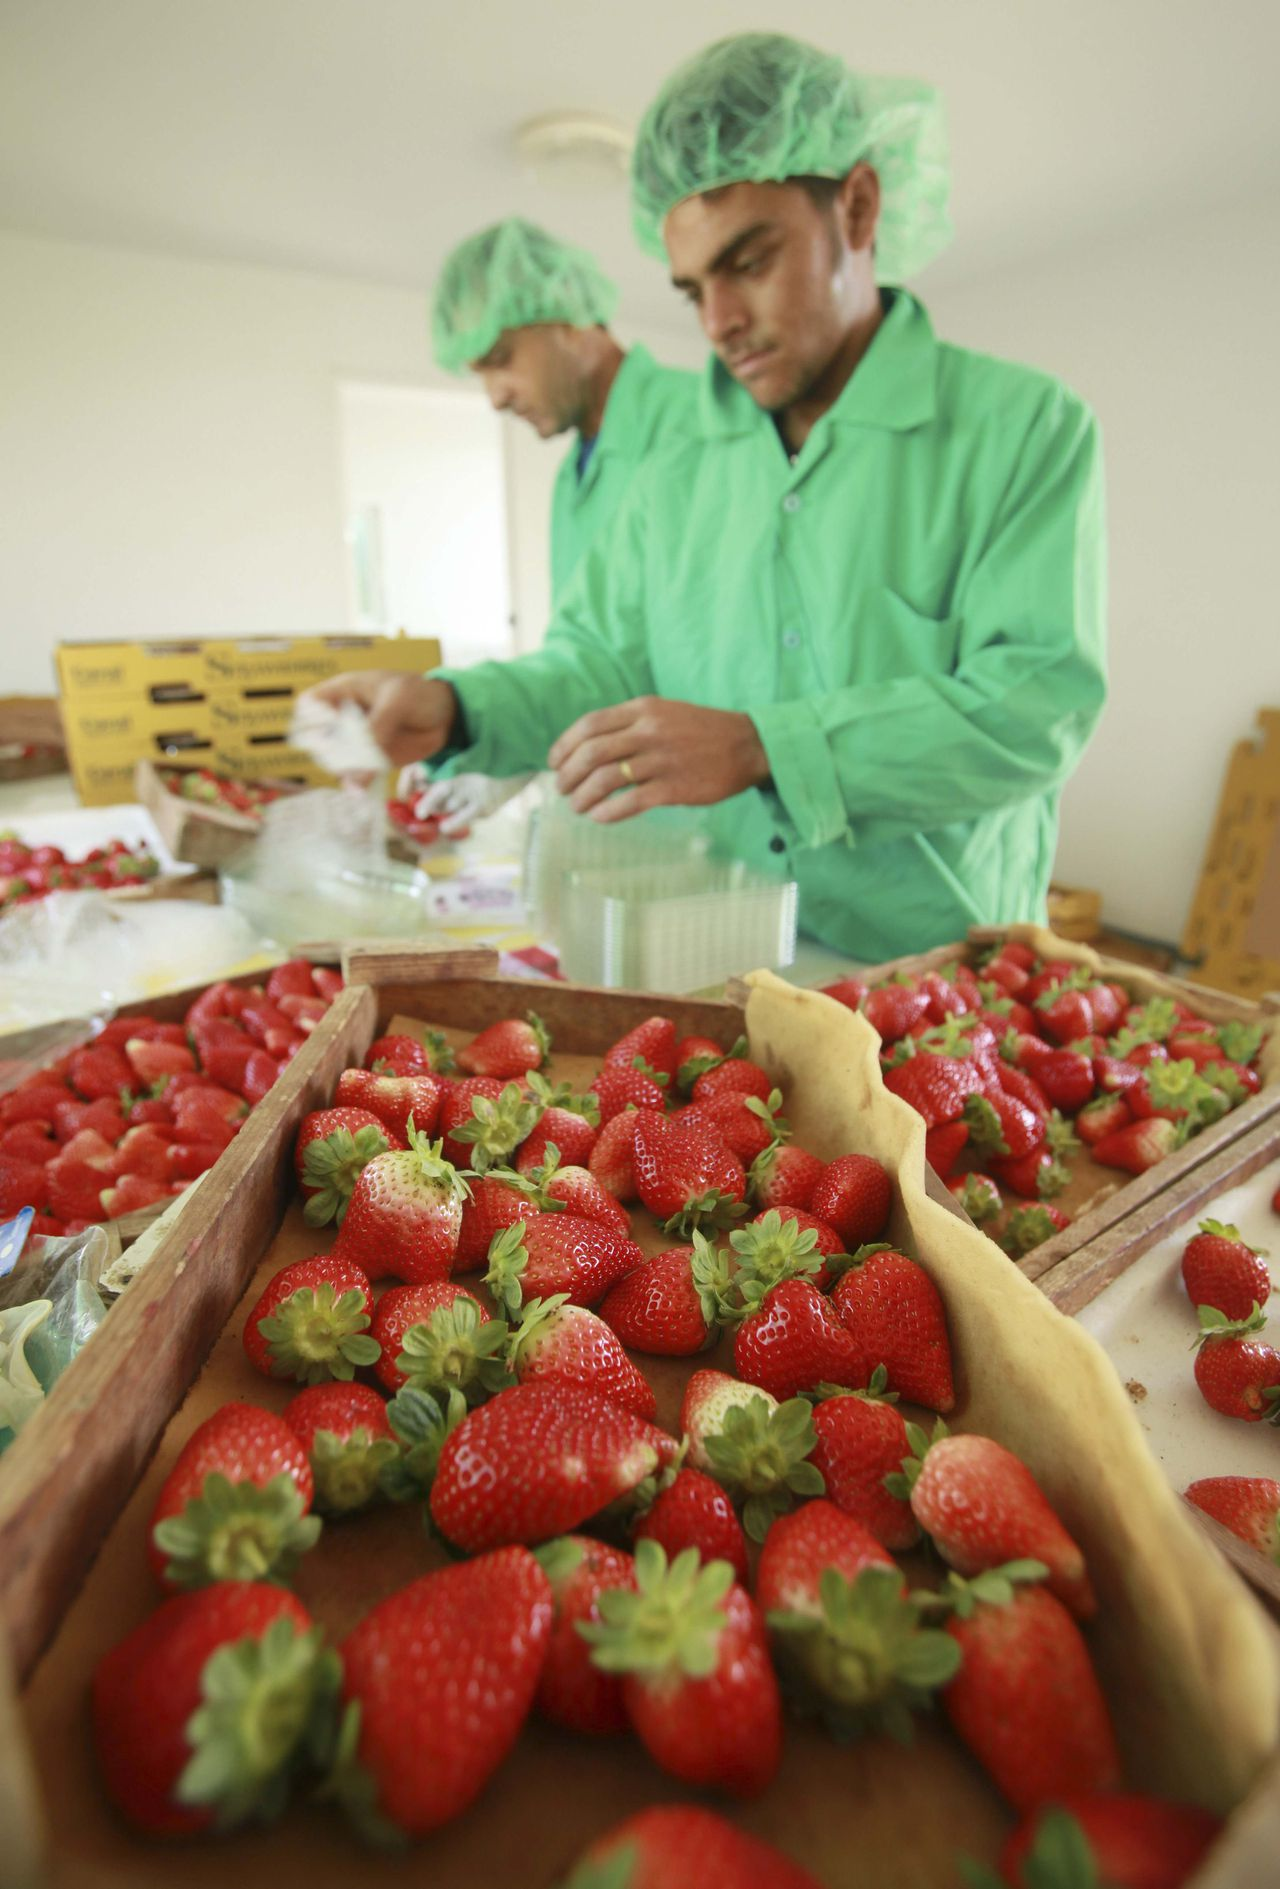 Palestinian farmers sort freshly harvested strawberries for export on a farm in Beit Lahiya in the northern Gaza Strip November 27, 2010. Gaza farm workers rose at dawn on Sunday to witness the start of exports to Europe that they hope will herald a wider expansion of trade. The Gaza farmers hope to send 1,000 tonnes of strawberries to Europe through a partly eased Israeli blockade in the coming week. Picture taken November 27, 2010. To mach feature PALESTINIANS-ISRAEL/GAZA-EXPORTS REUTERS/Suhaib Salem (GAZA - Tags: POLITICS AGRICULTURE FOOD BUSINESS)